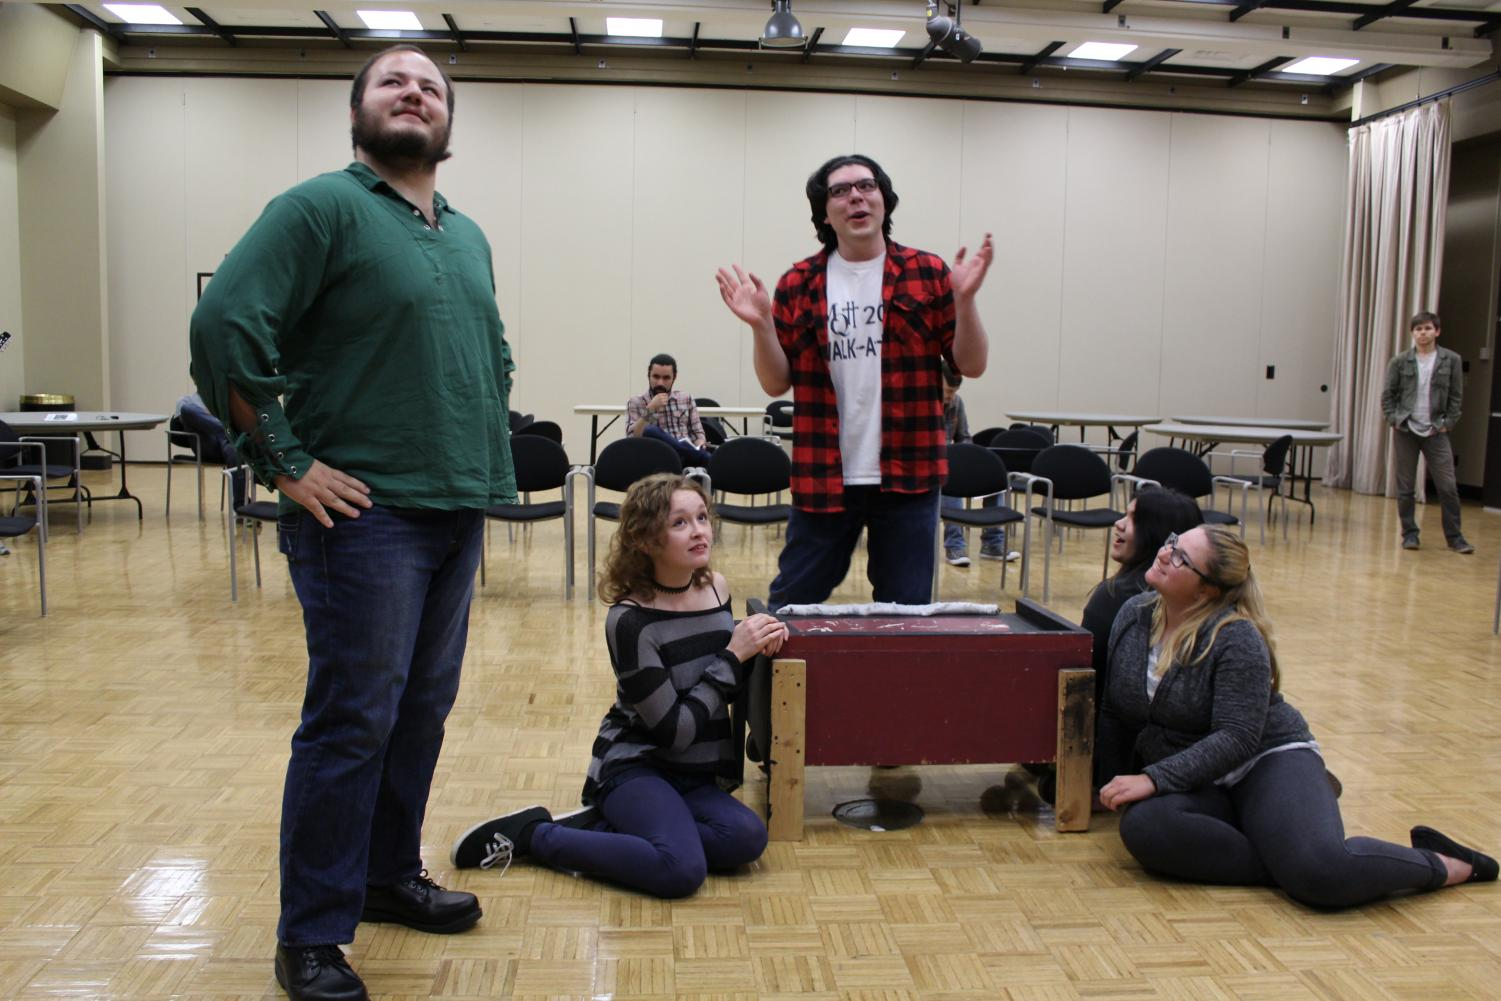 Sheriff Nottingham, played by James Solis (left), plots with the Evil Prince John, played by Matthew Ruiz (center) to take down Robin Hood, with the fawning ladies' support, played by Sam Garcia (left), Natalie Villarruel (back right) and Bailey Kien (front right).